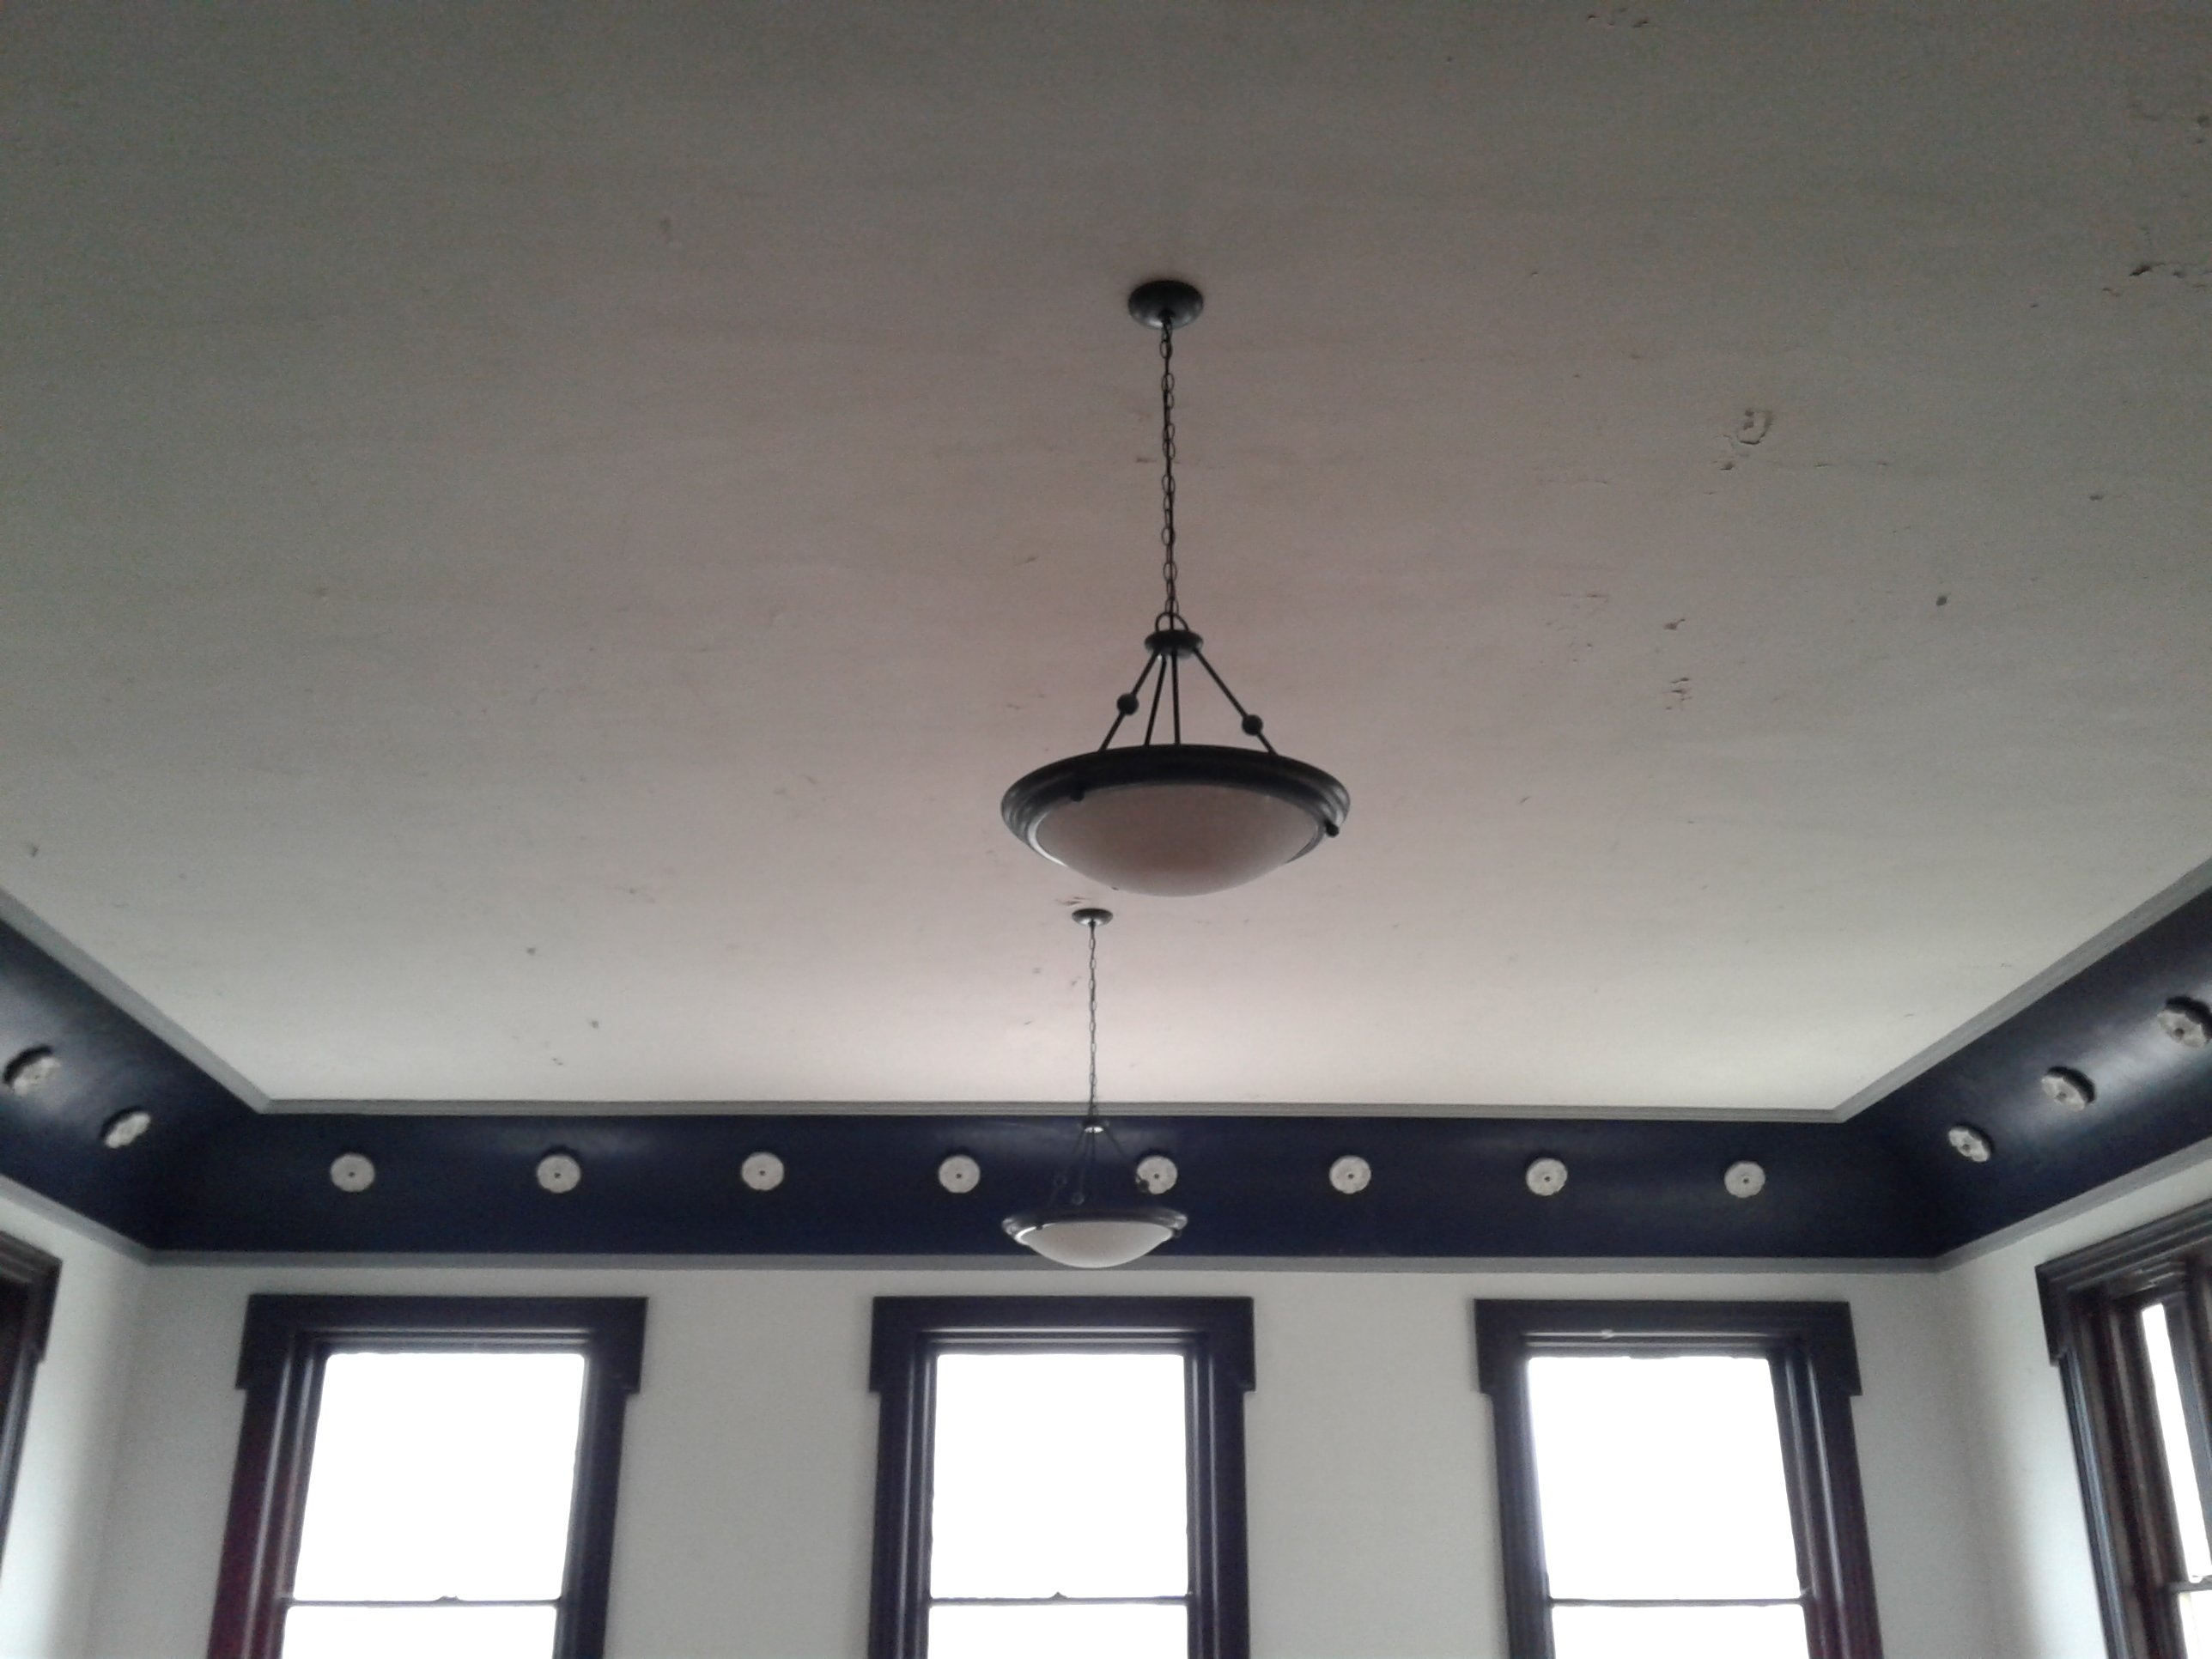 Meeting room with unique flower molding and lightbulb in center of flower molding in Historic Jones Memorial Library. Confederate soldiers met here after the Civil War.